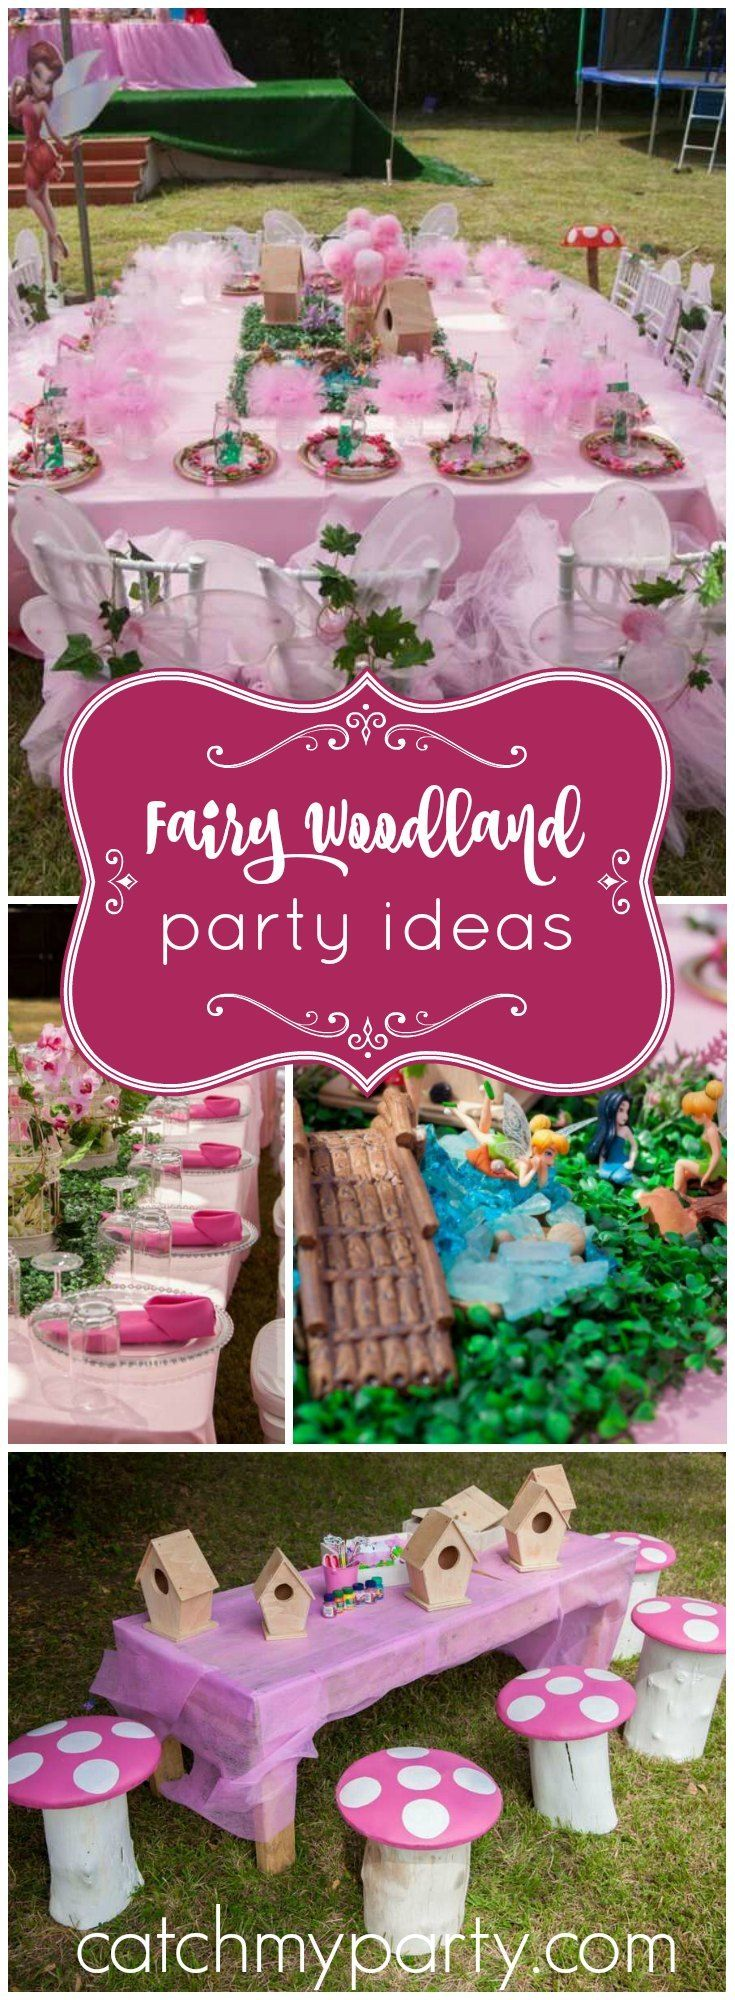 50 ideas for a garden party for kids inducedfo workwithnaturefo